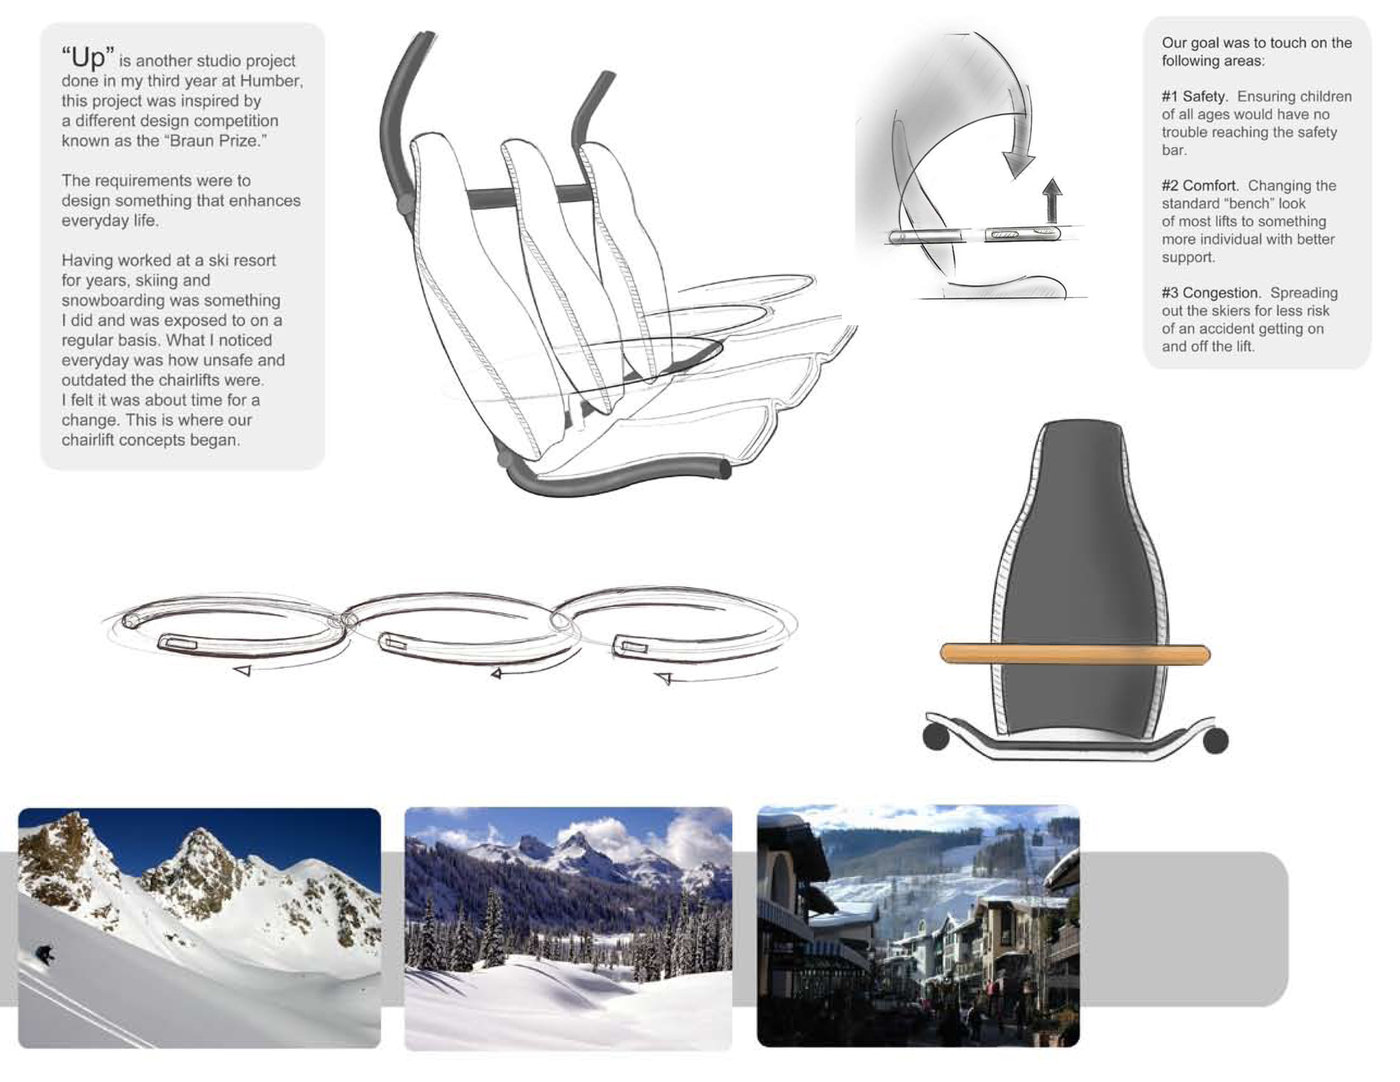 Safe and effective chairlift design by Andrew Parsons at Coroflot.com